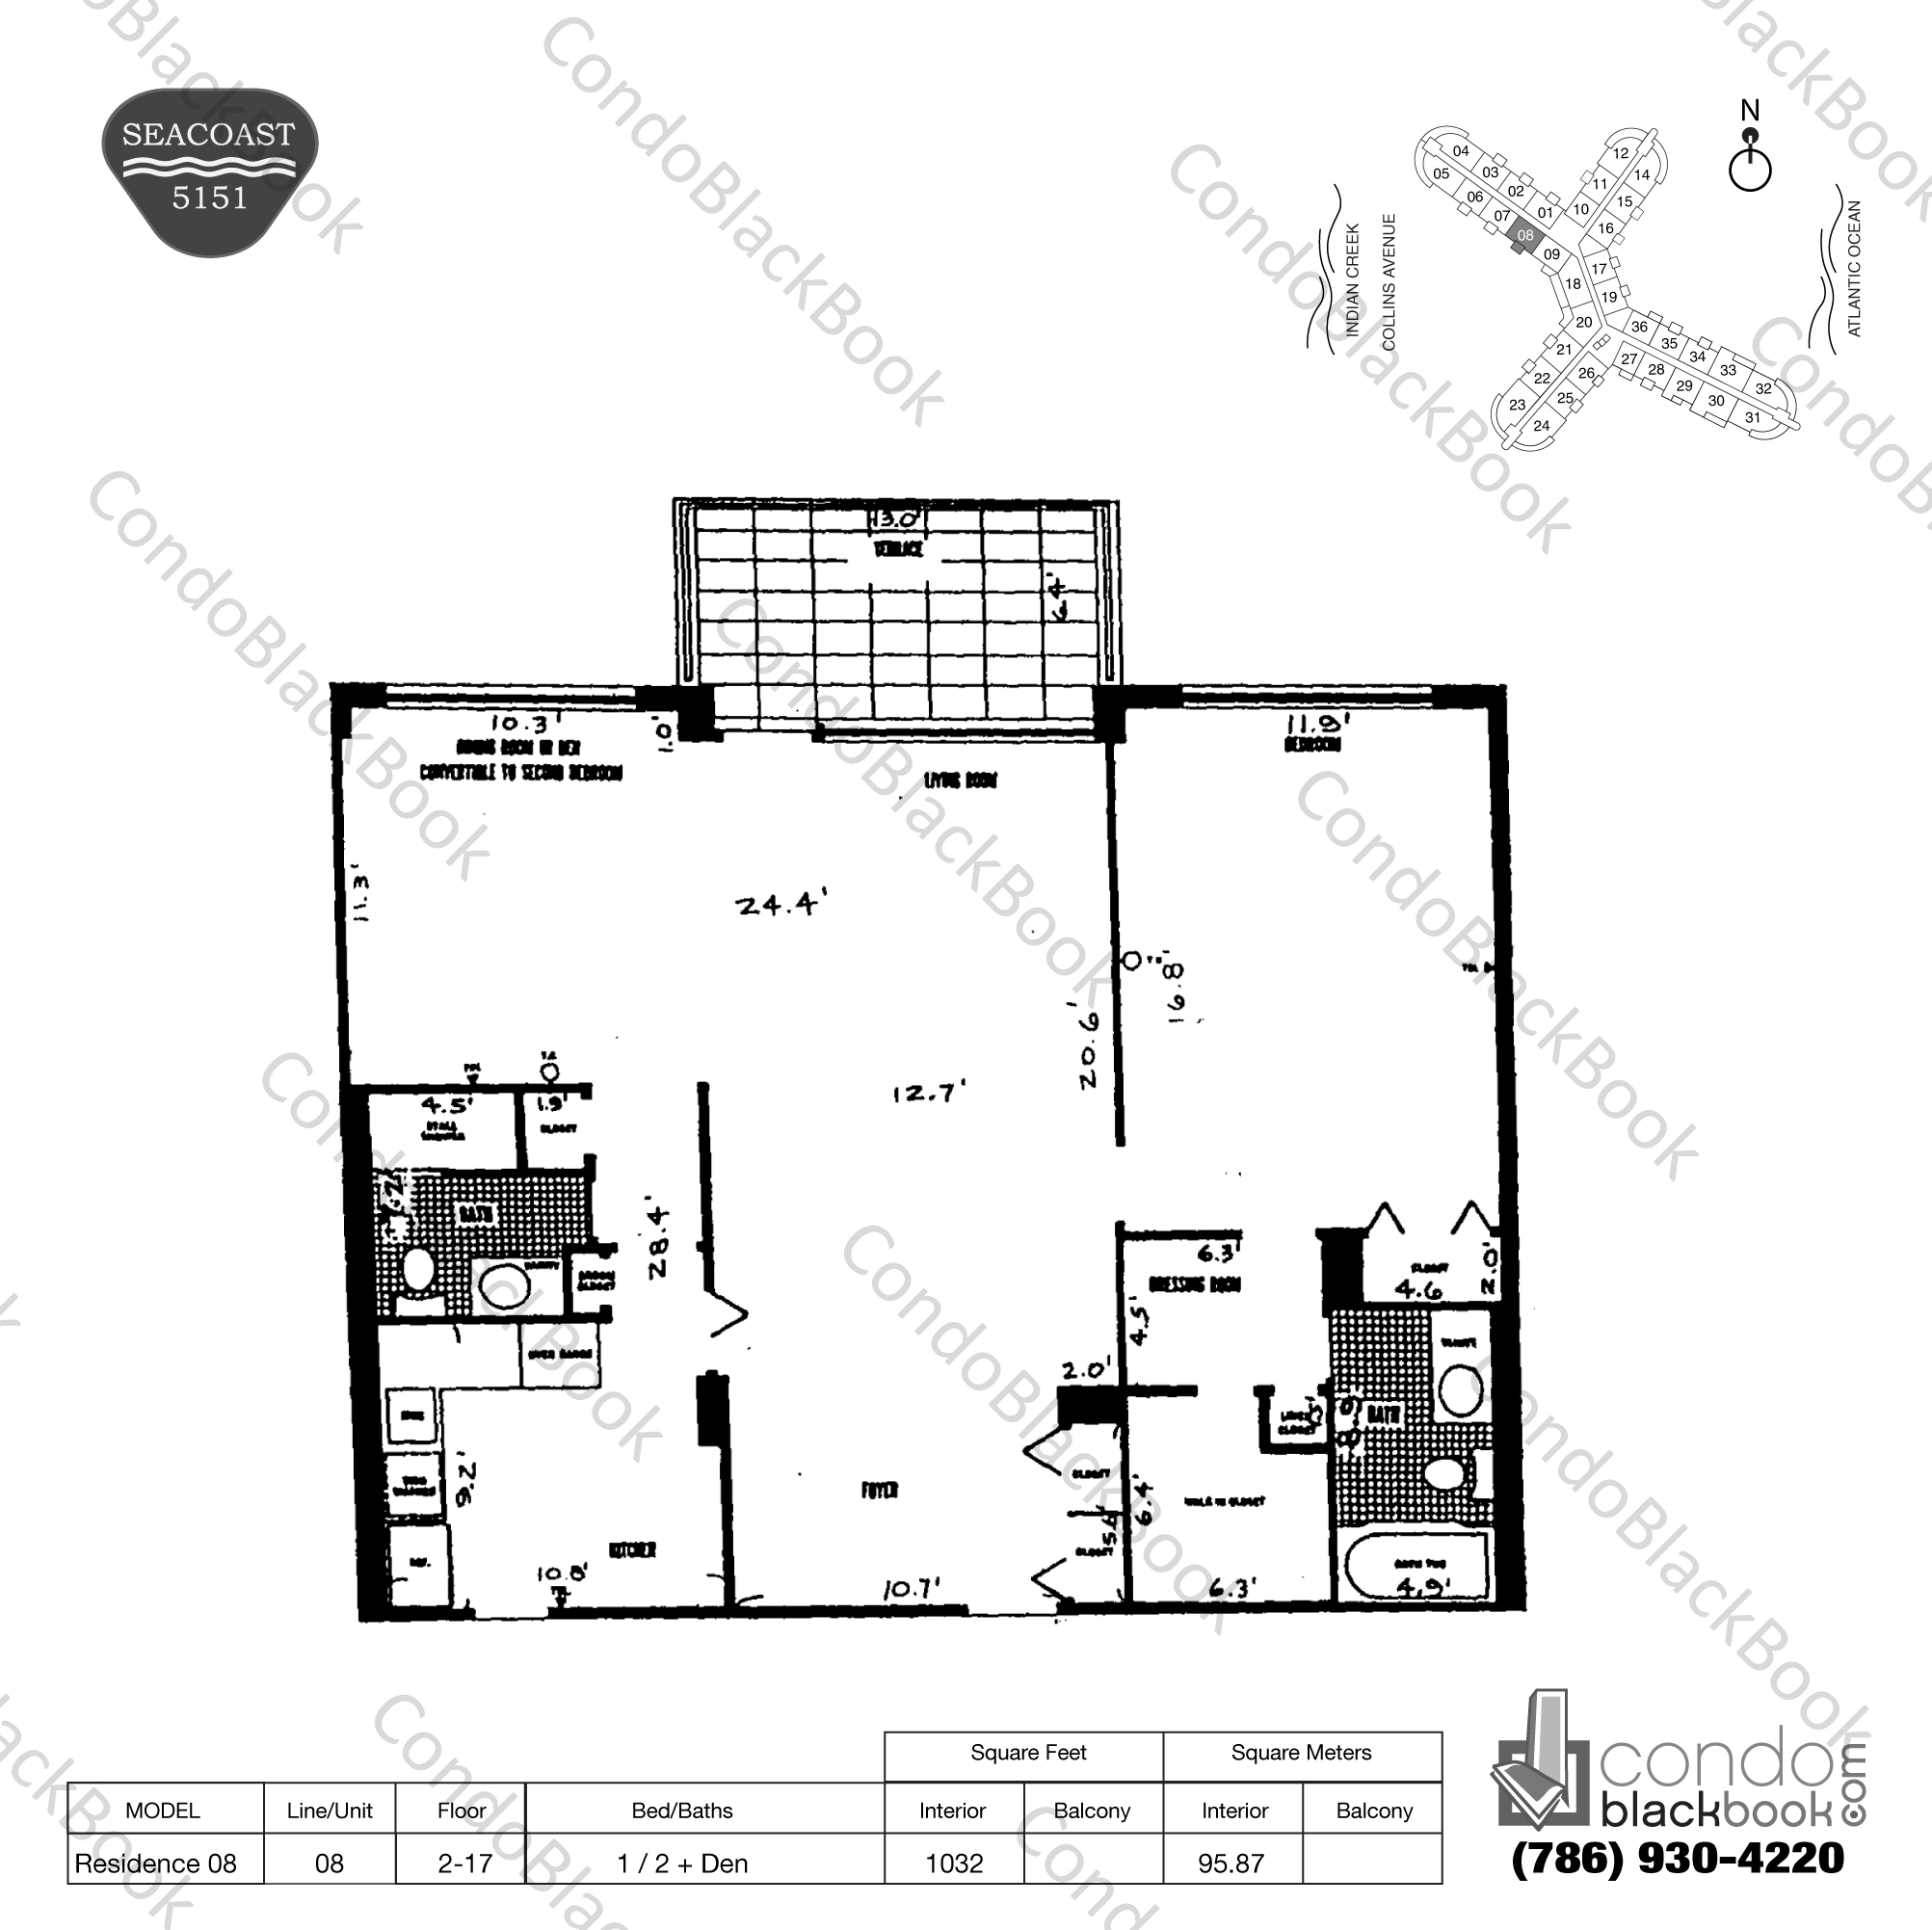 Floor plan for Seacoast 5151 Mid-Beach Miami Beach, model Residence 08, line 08, 1 / 2 + Den bedrooms, 1032 sq ft